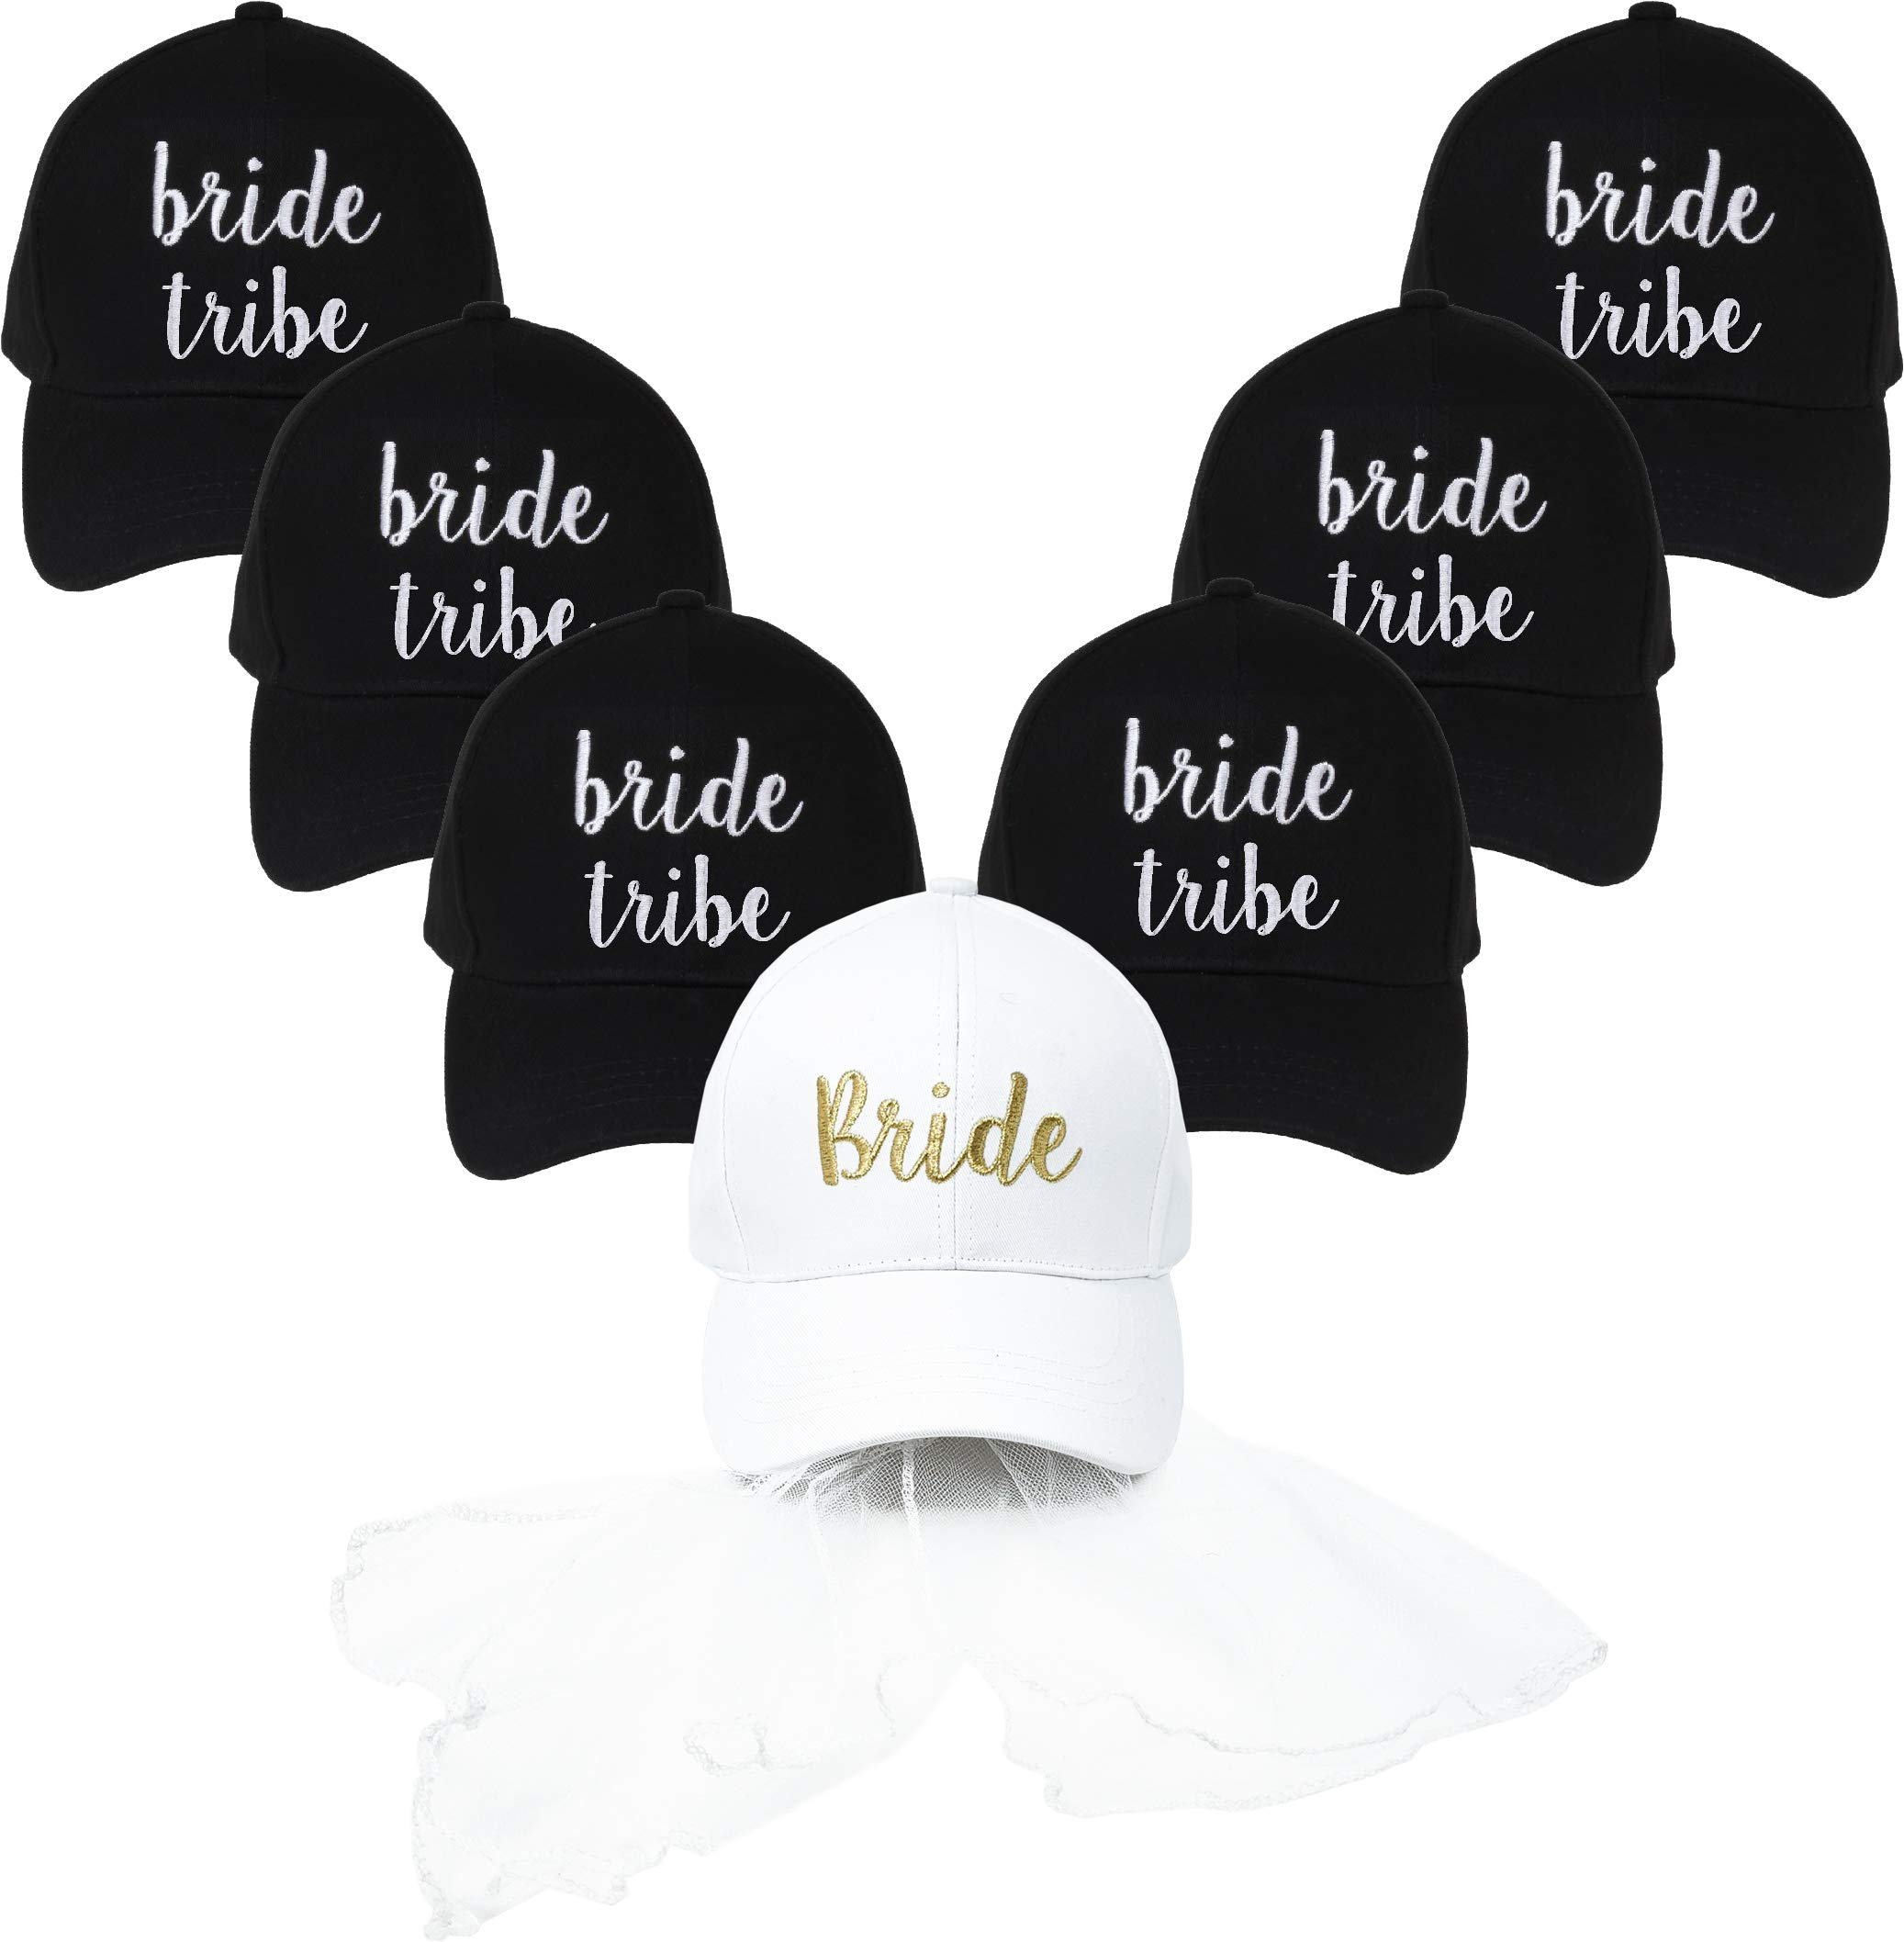 Funky Junque Women's Baseball Bold Cursive Embroidered Sayings Adjustable Hat (1 Bride (White w/Veil) & 6 Bride Tribe (Black))